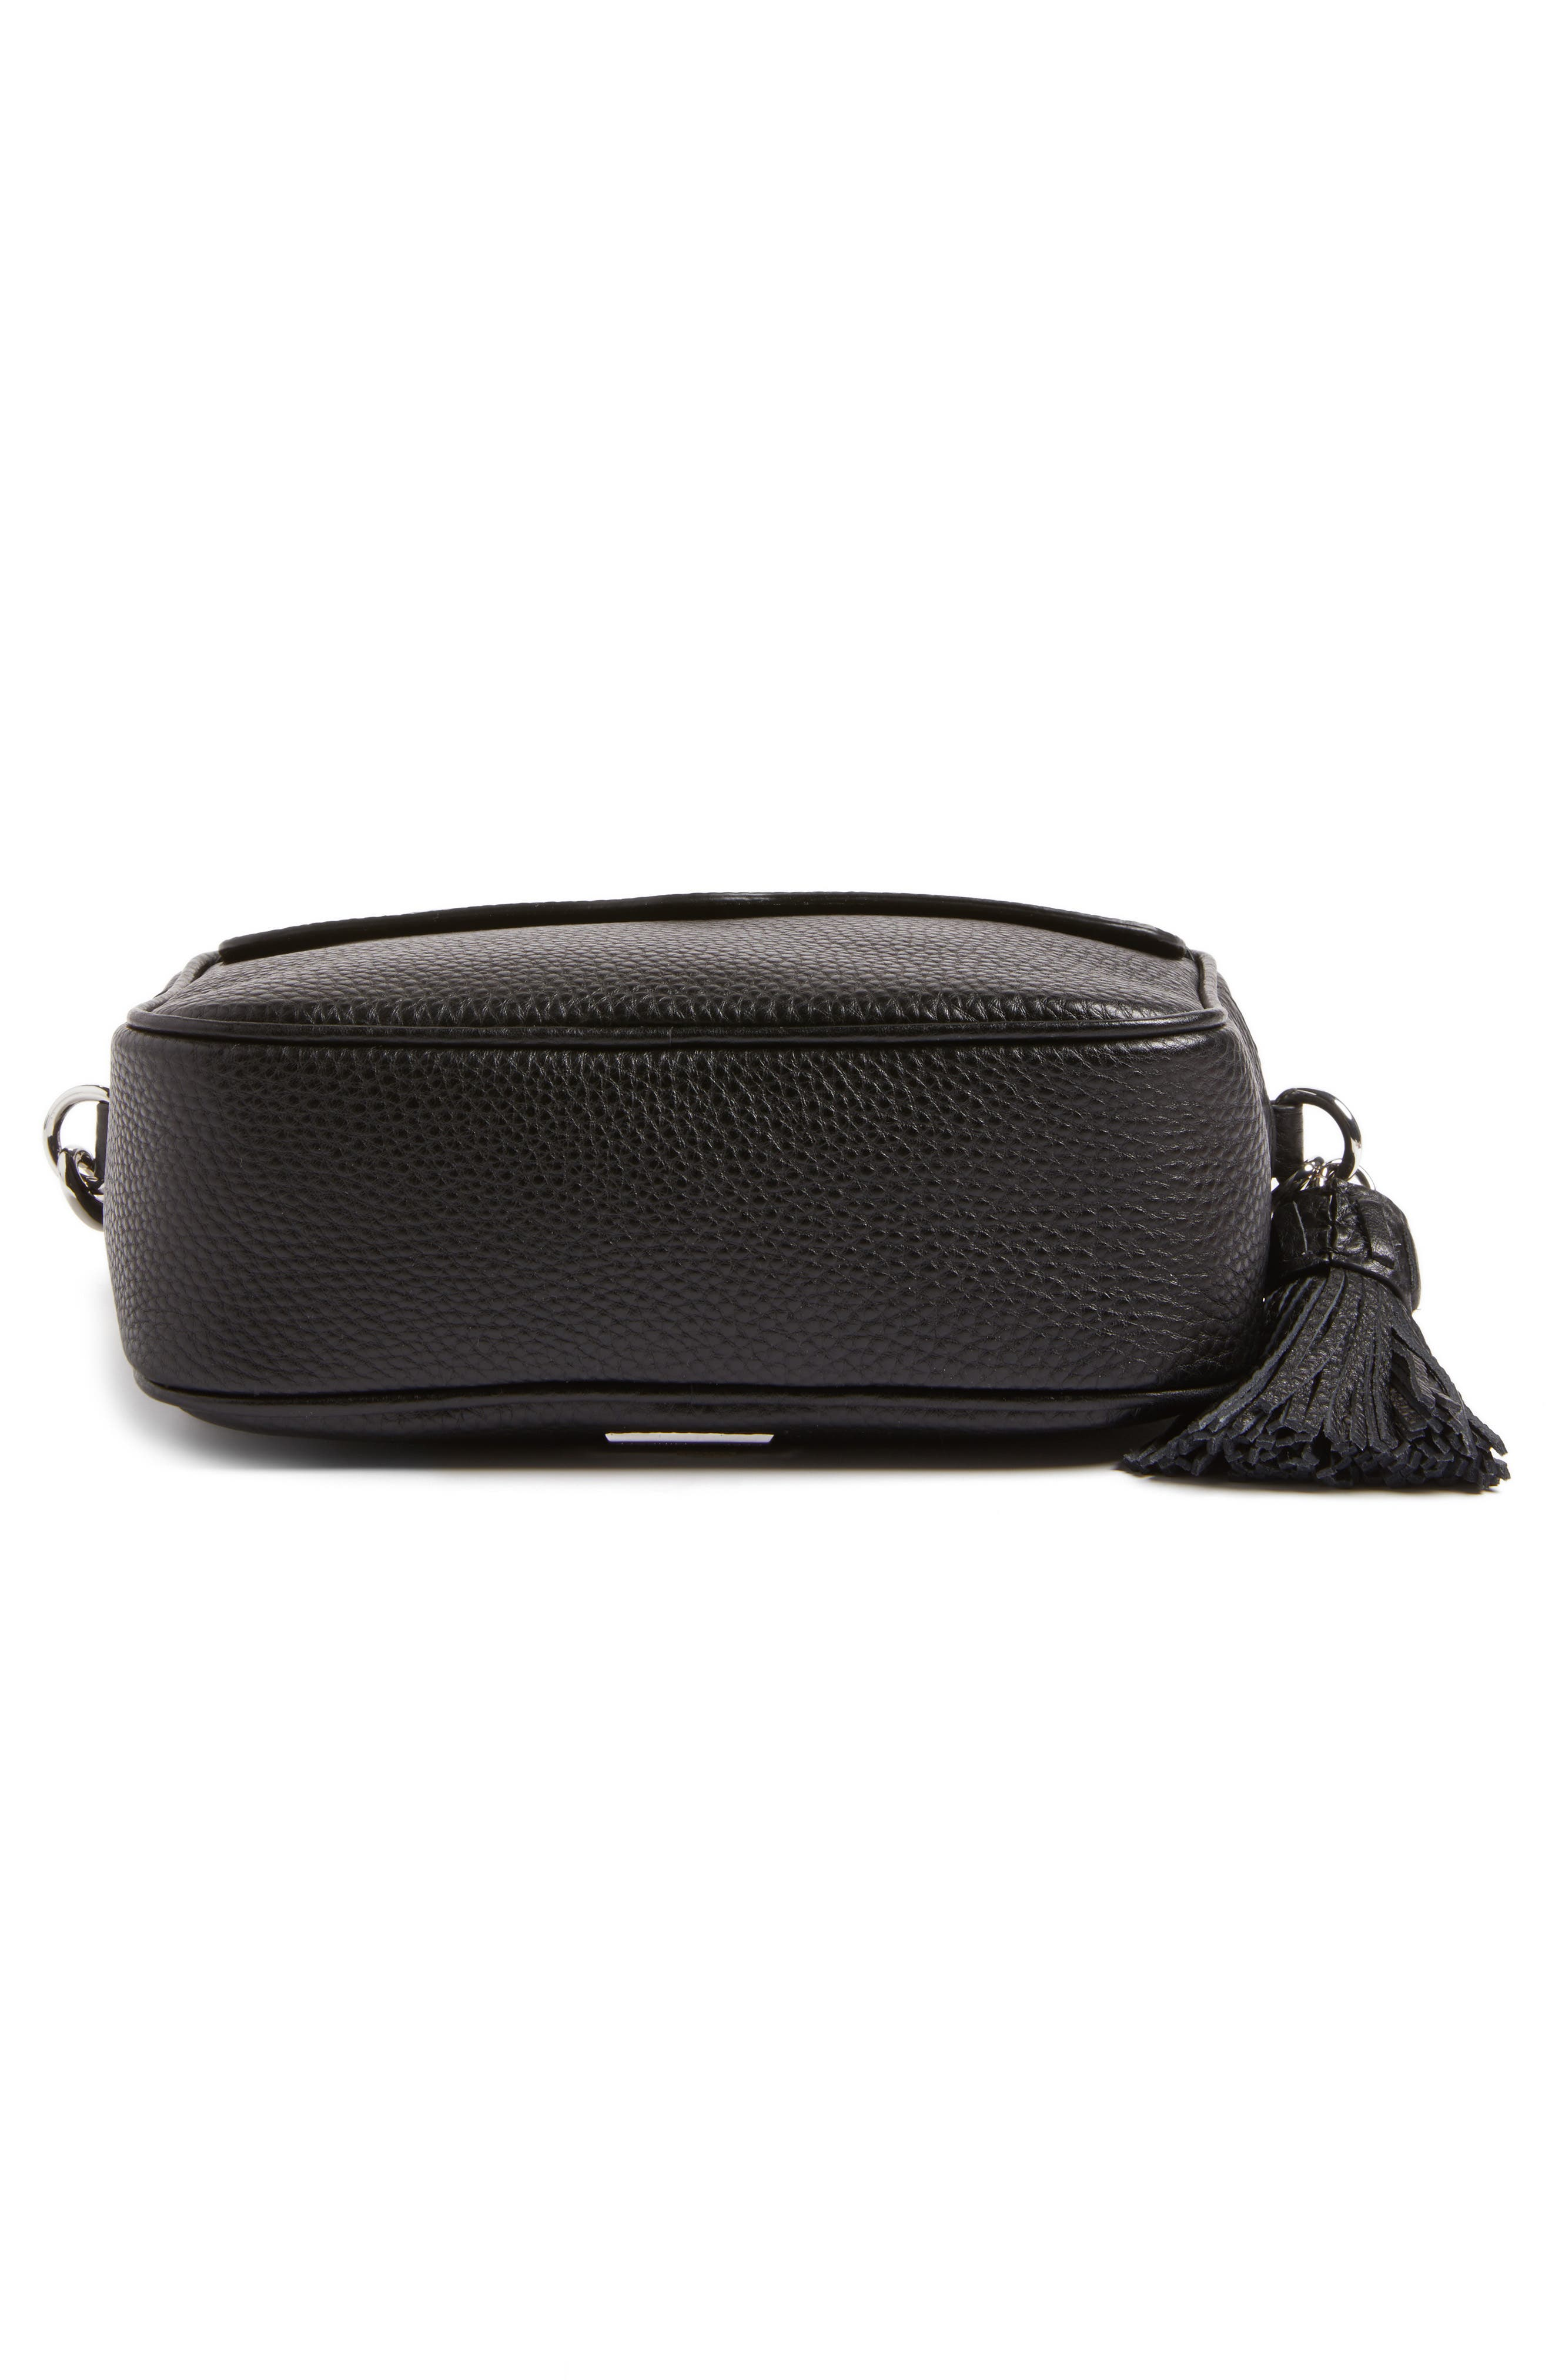 Leather Camera Bag with Guitar Strap,                             Alternate thumbnail 7, color,                             Black/ Silver Hardware